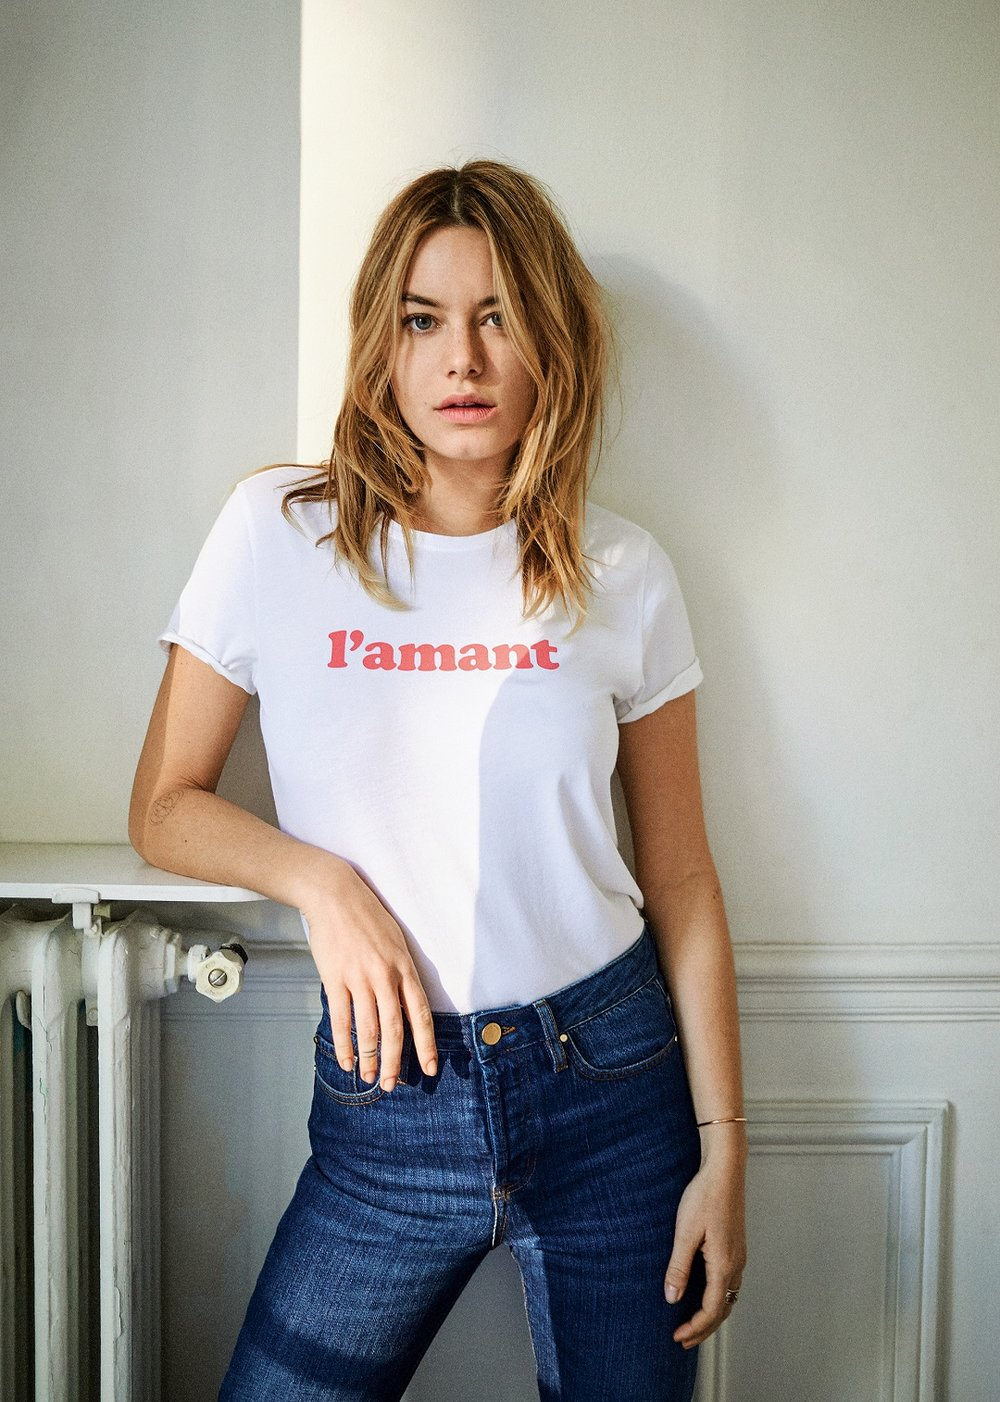 SEZANE L'amant T-Shirt  Short sleeved screenprint tee in coral with round neckline white tee.